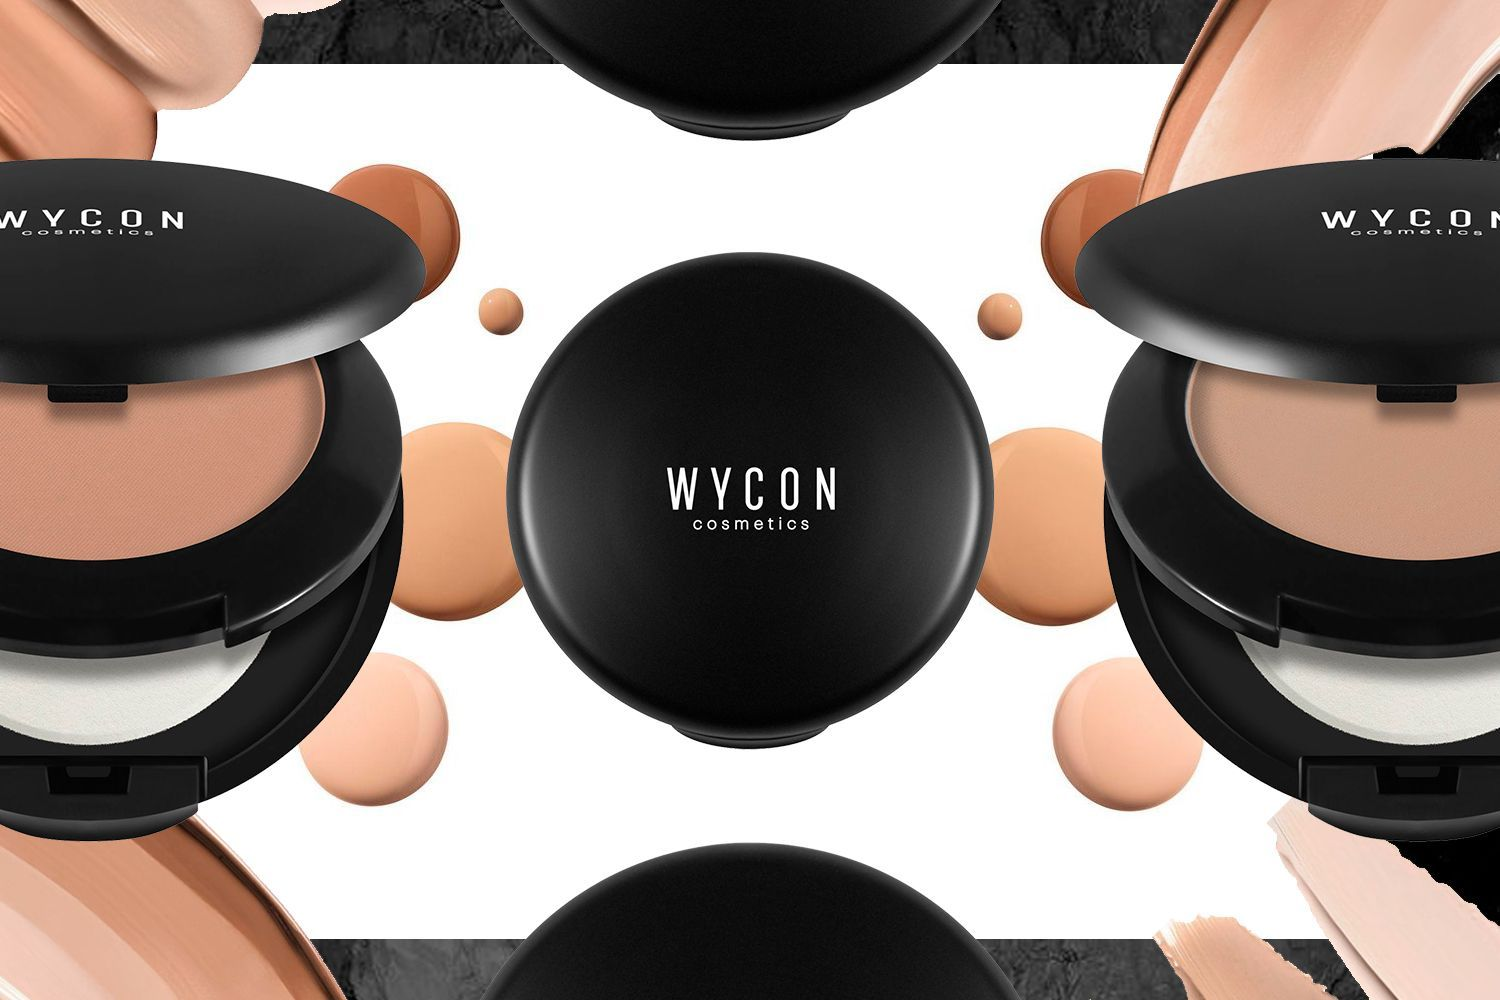 GET THE LOOK OF CHLOË GRACE MORETZ Ottieni l'effetto Chloë Grace Moretz con WYCON cosmetics in pochi e semplici step